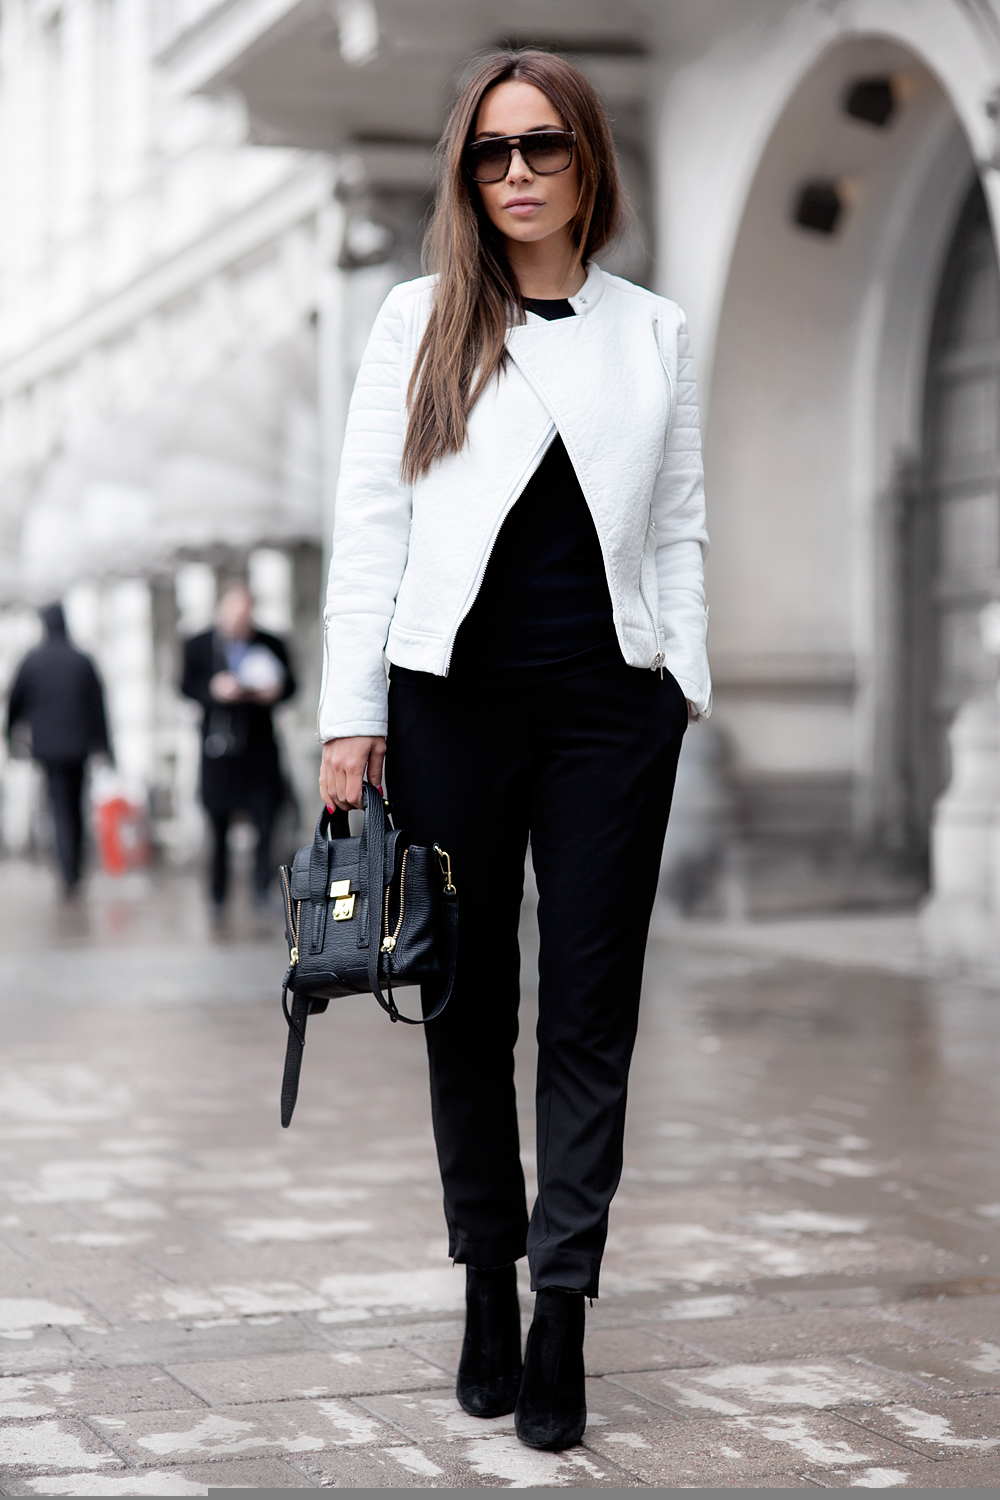 Black and White Outfit Ideas: Johanna Olsson is wearing a white leather jacket with black trousers ankle boots